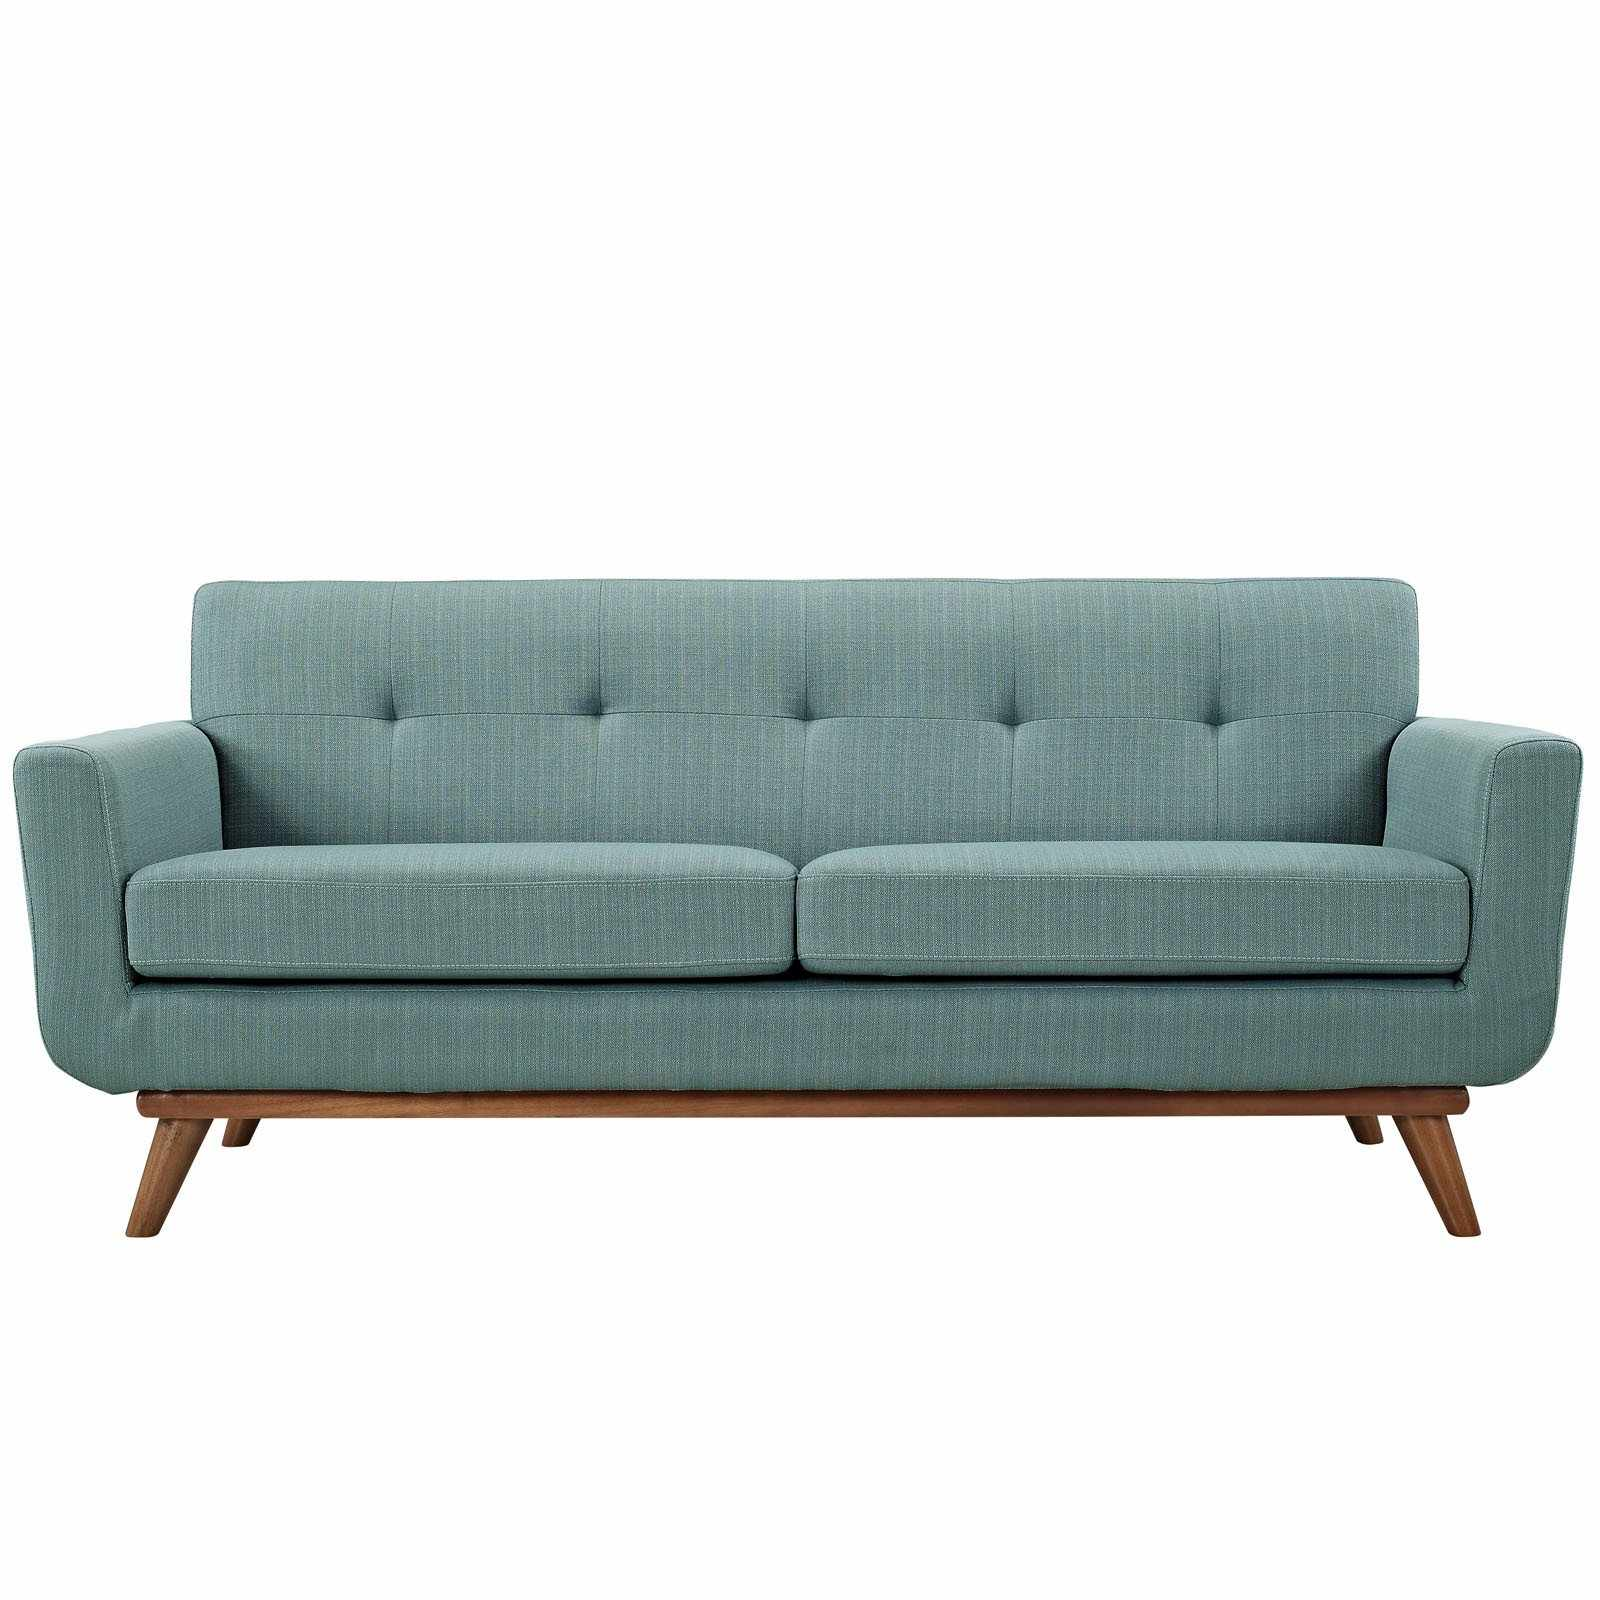 with rook the under salt loveseat blog west what to elm loveseats eddy sofa pair